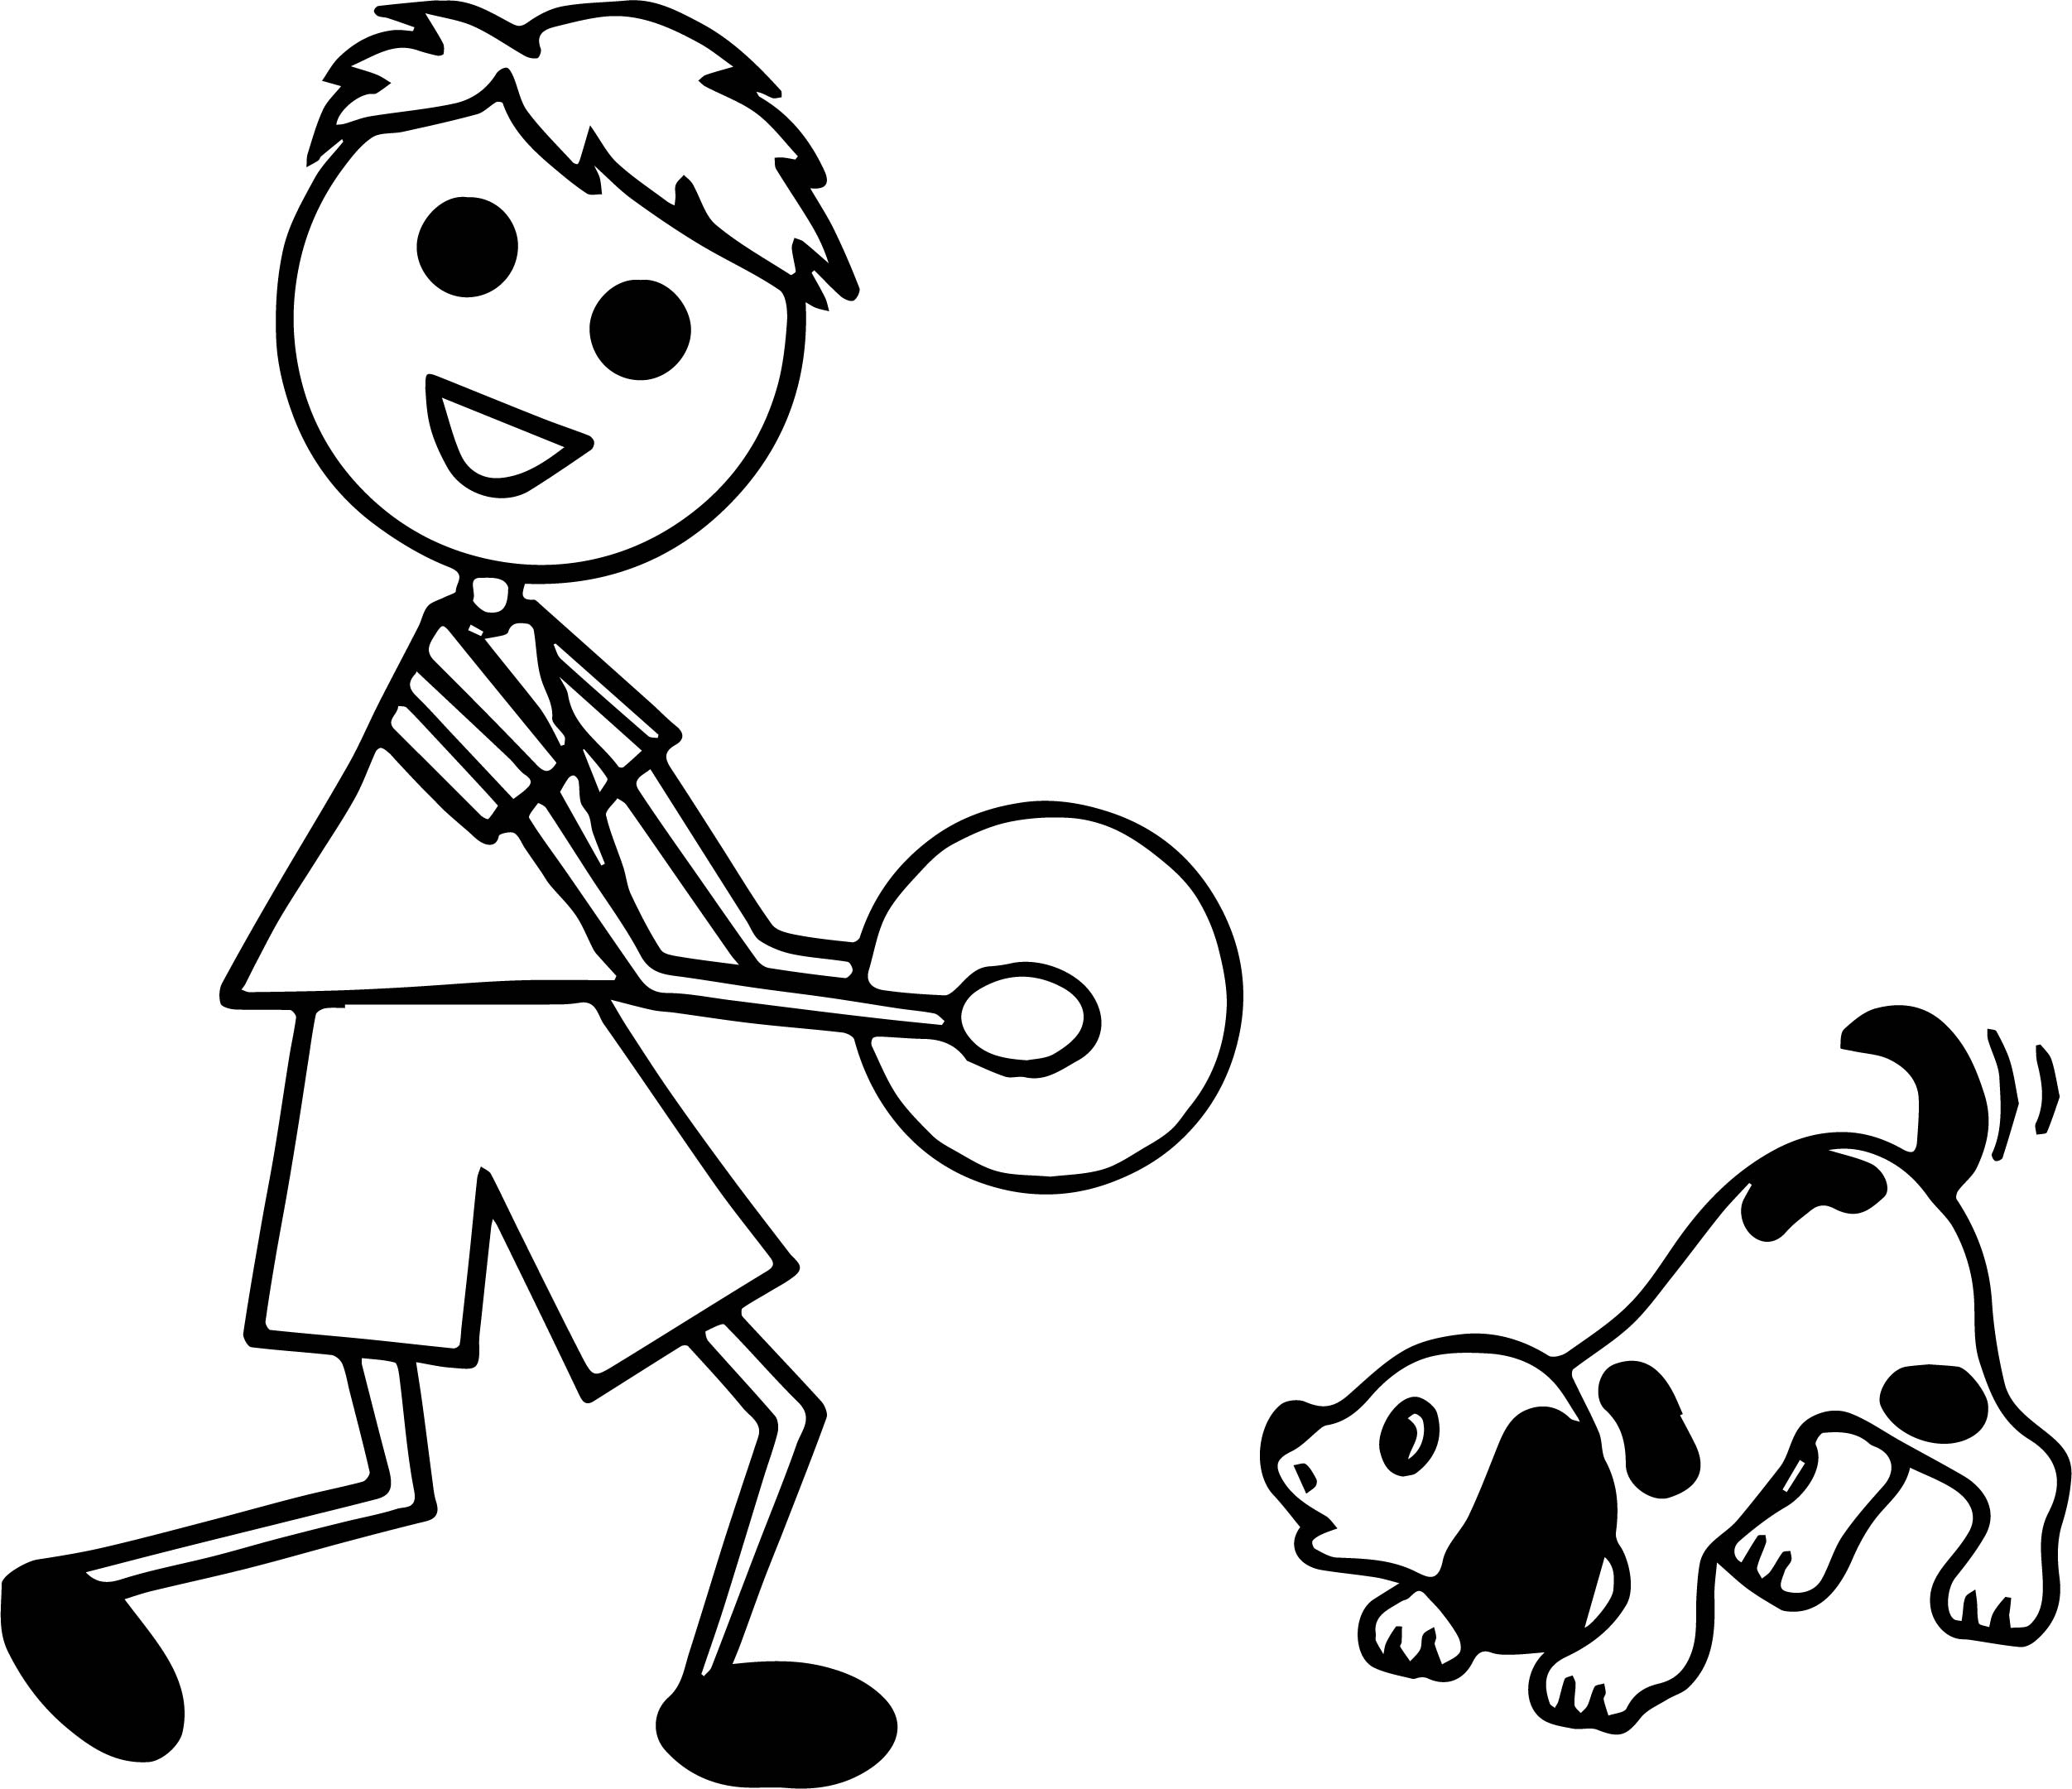 2503x2161 Dog Stick Figure Pictures To Pin